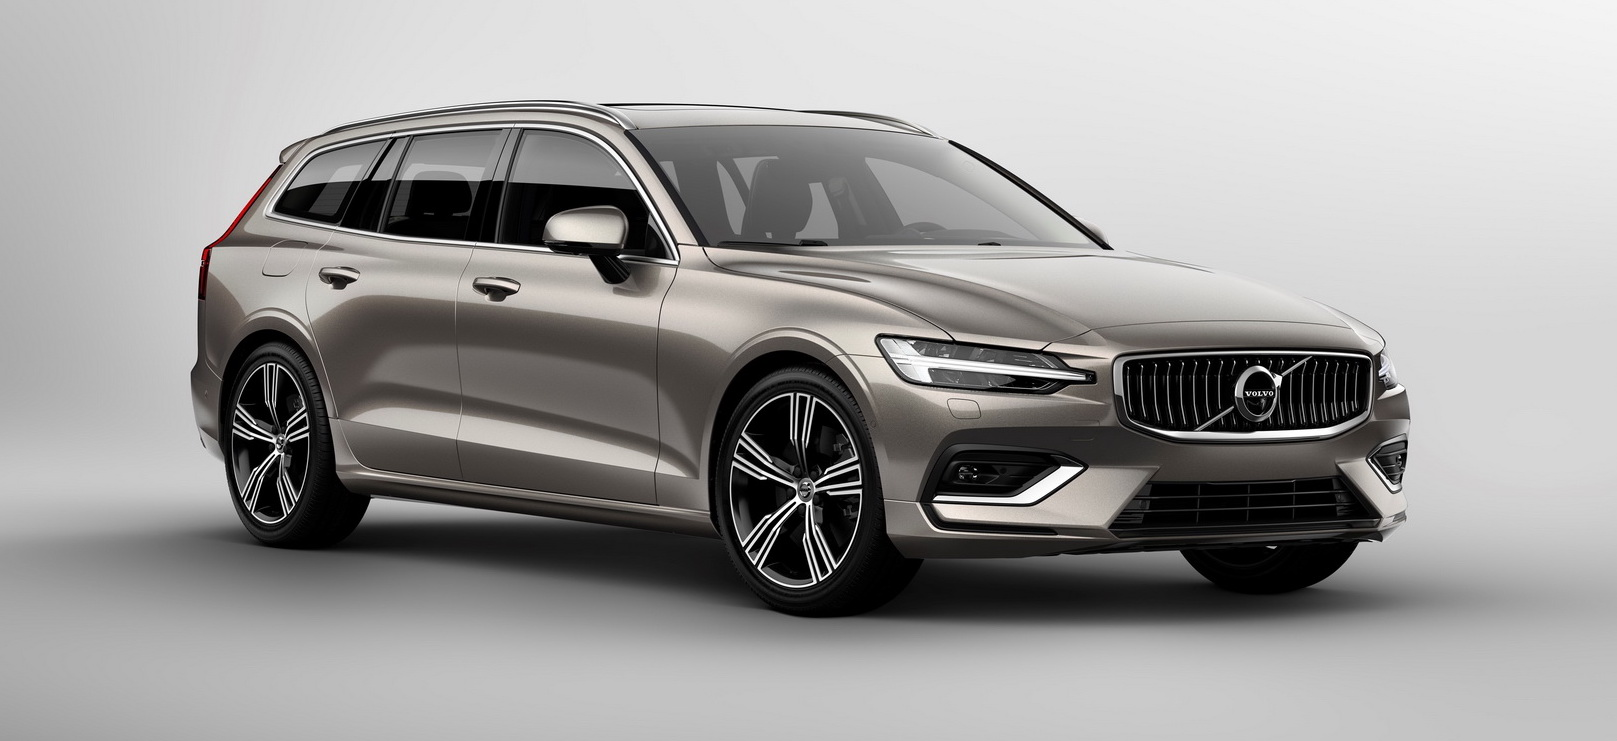 electrify will motors model volvo it new first a models range our have electric extreme engine cars more only all every in sells be car automaker year traditional little twin to than starting some the